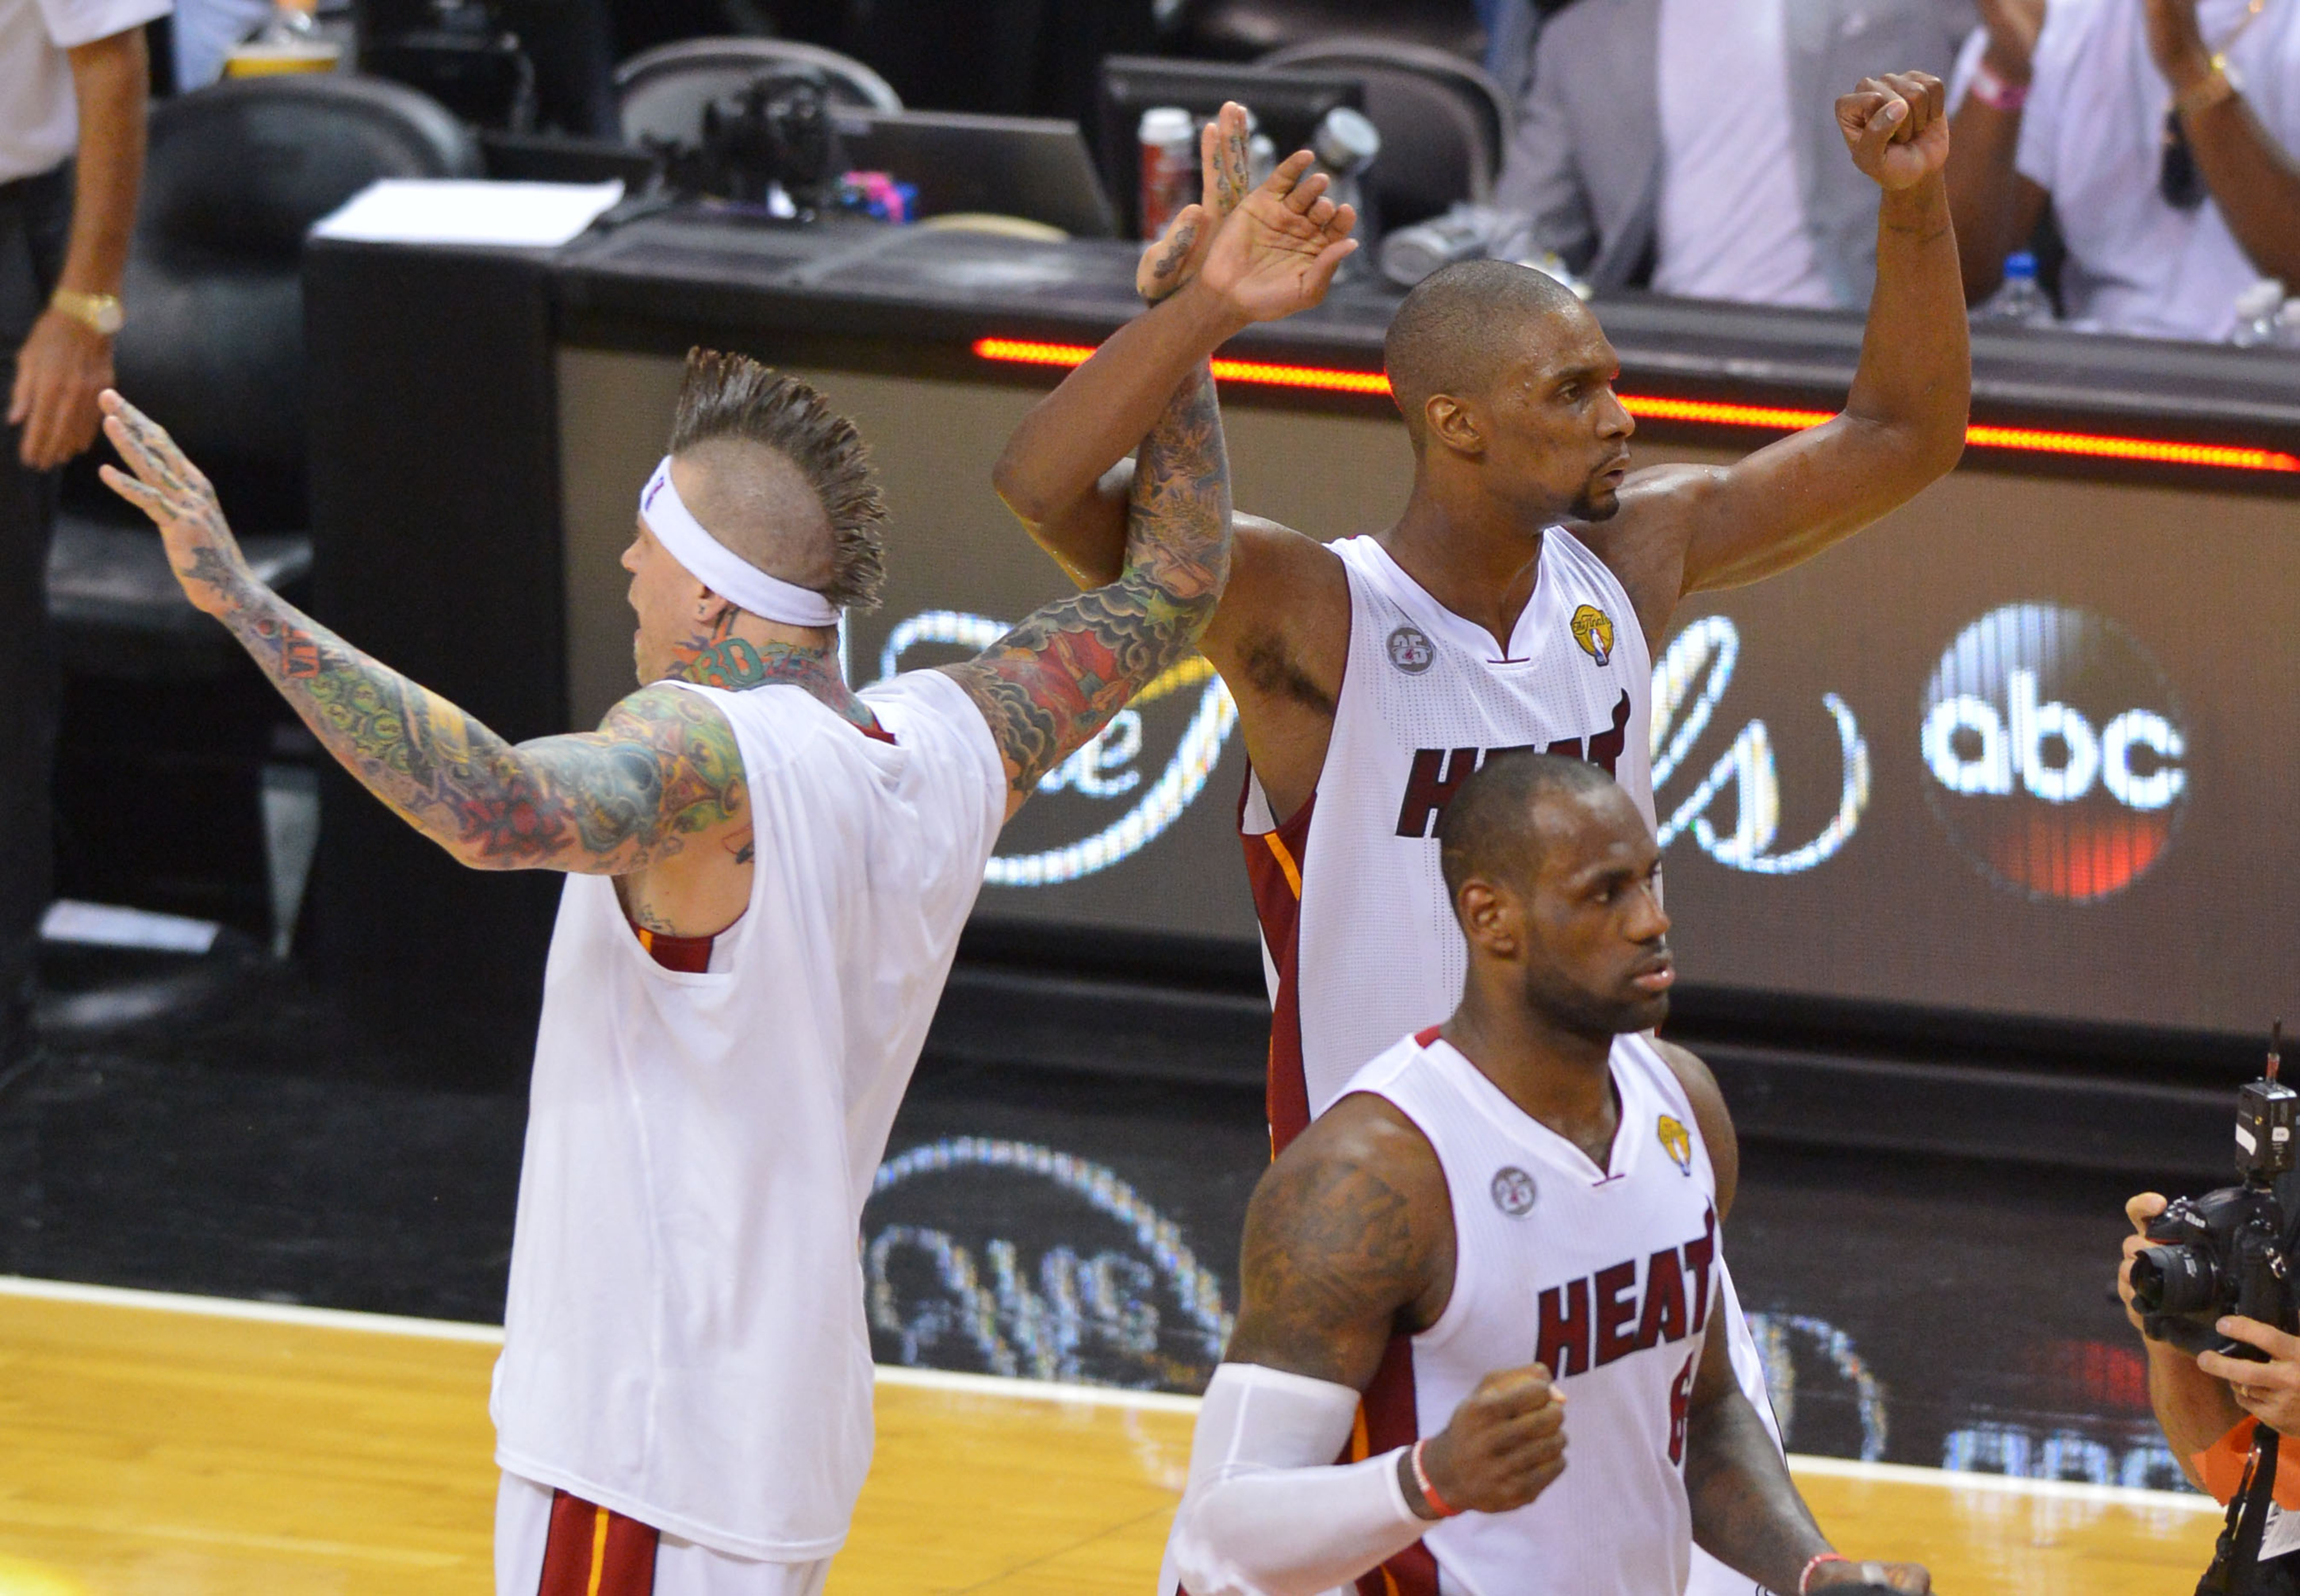 NBA Finals, Spurs vs. Heat: Lasting impressions from a wild Game 6